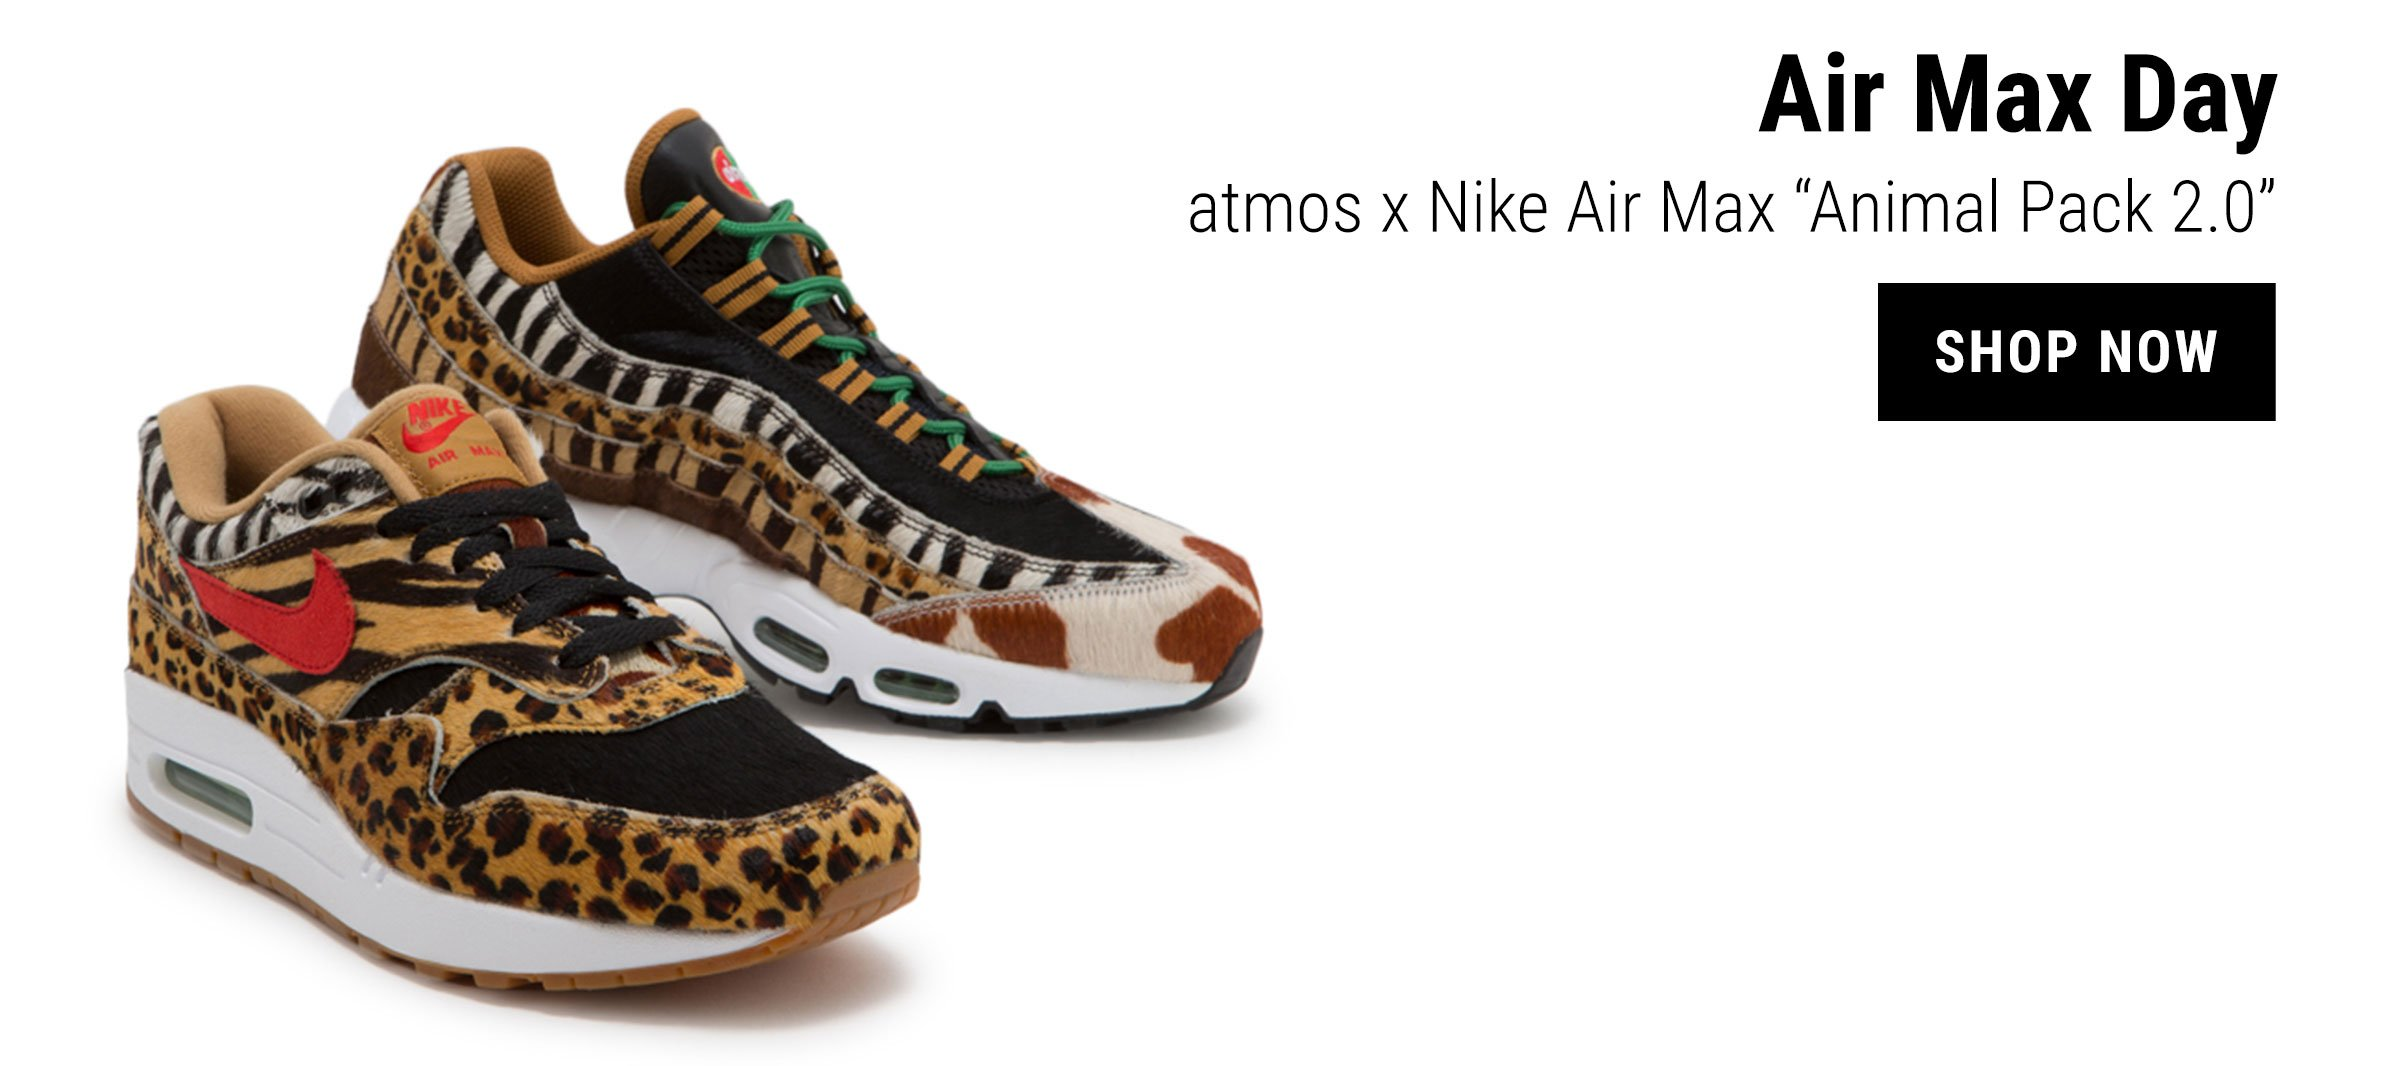 0072994ce83 Air Max Day is Here. - Flight Club Email Archive